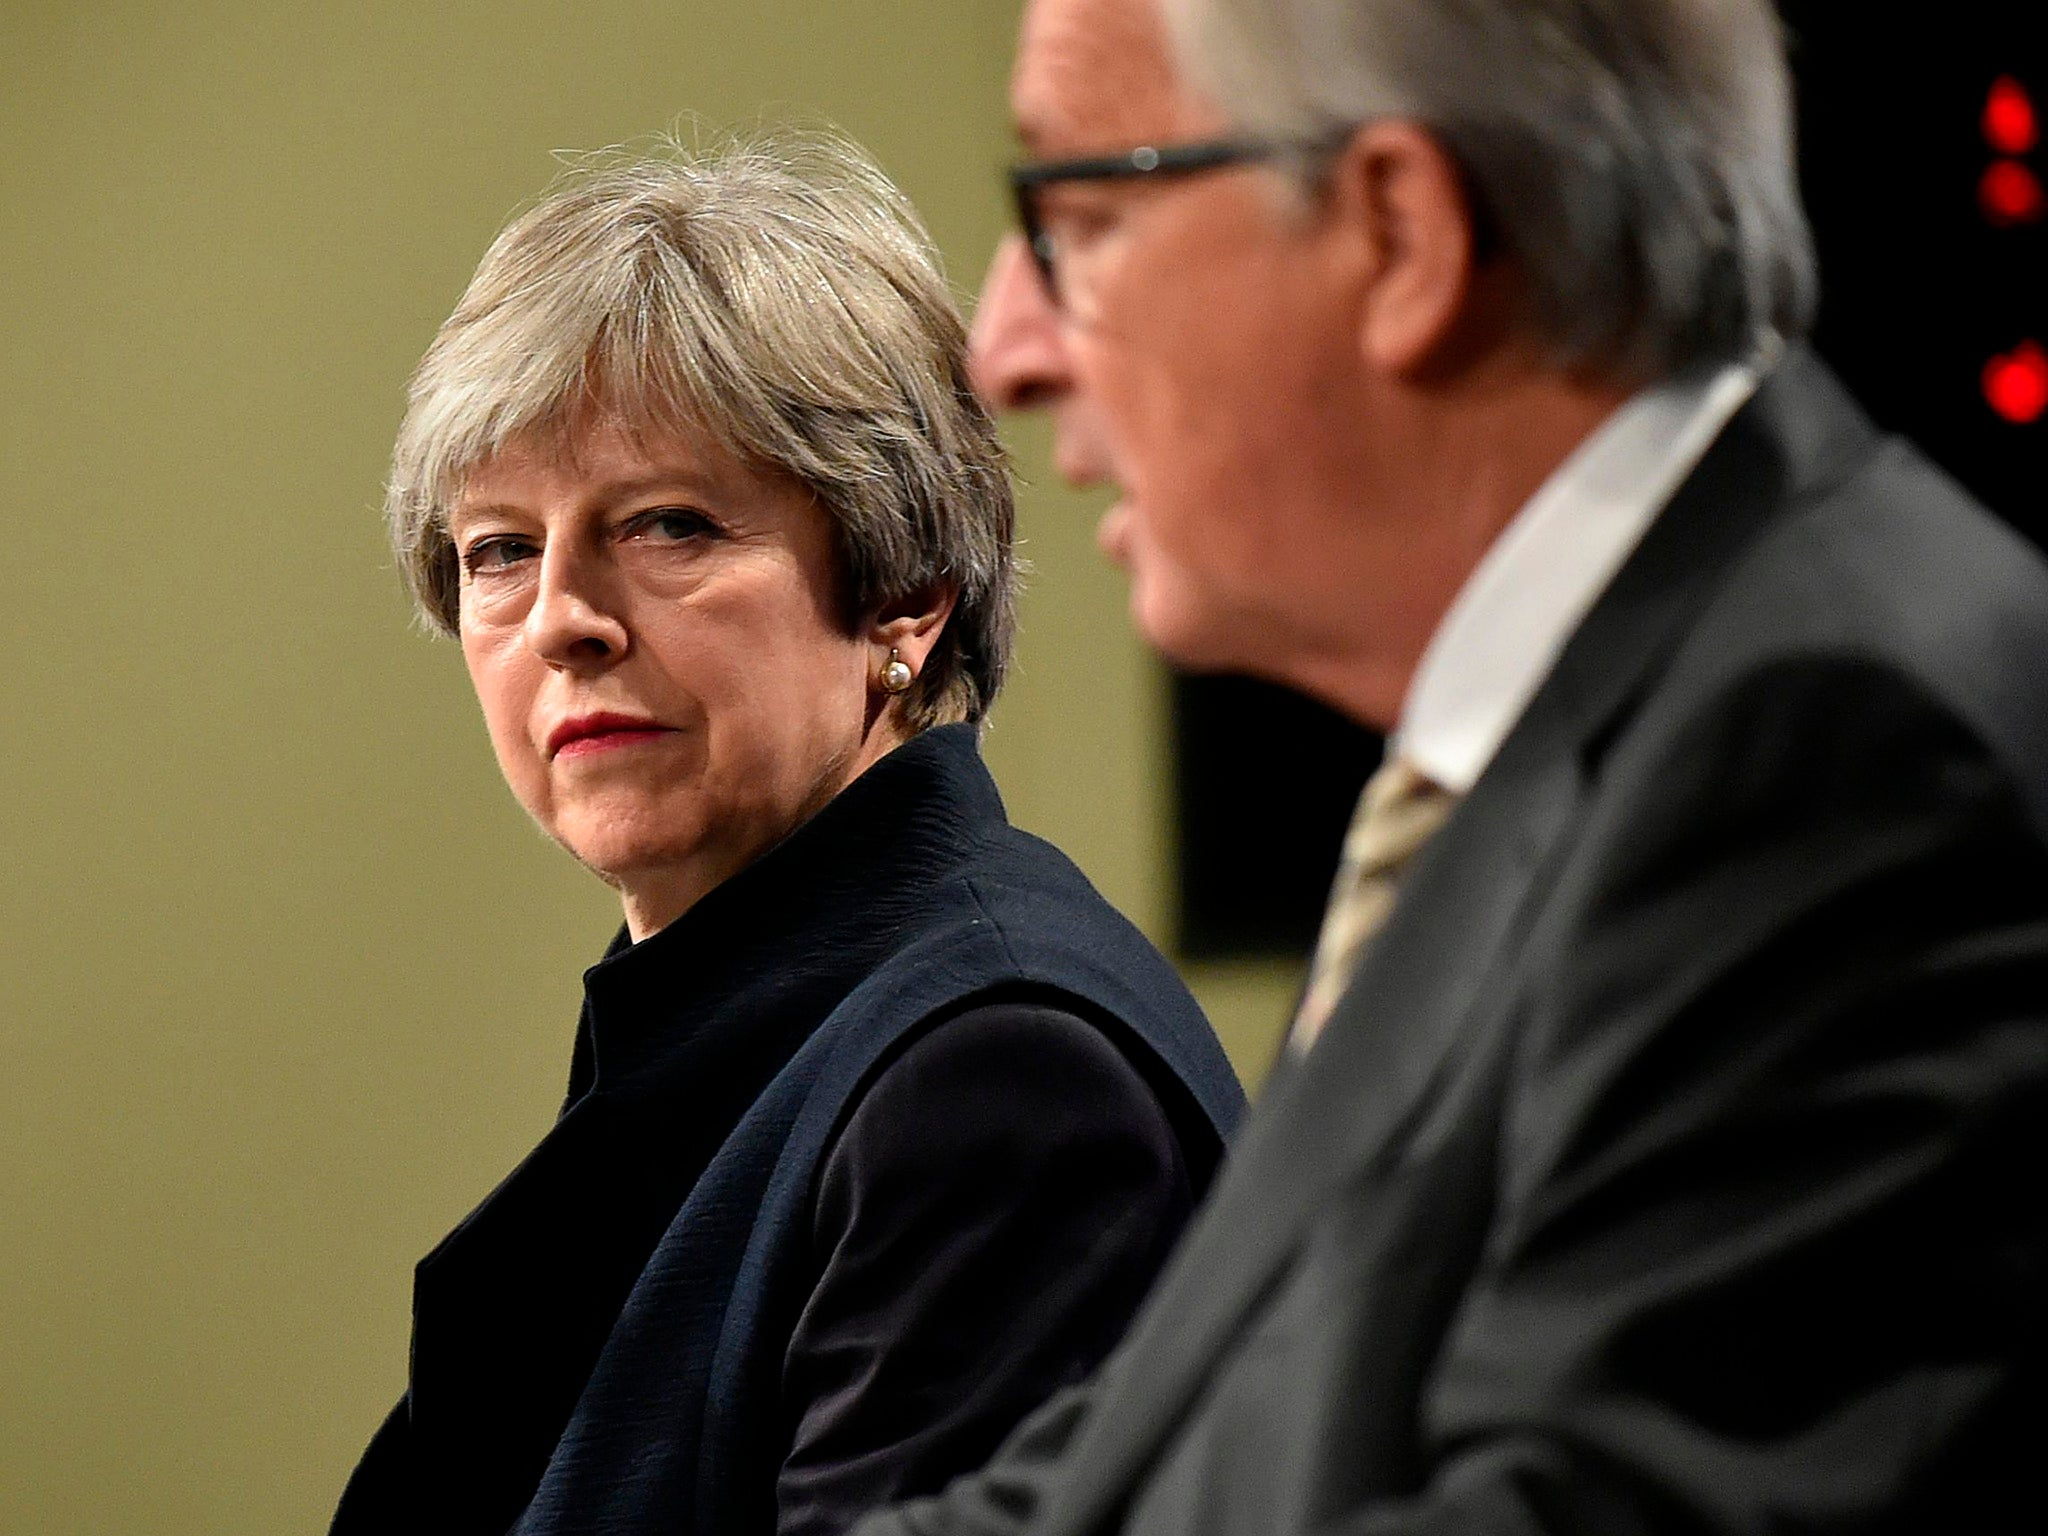 Theresa May's Brexit deal 'hard to reconcile' with UK leaving the single market and customs union, EU says